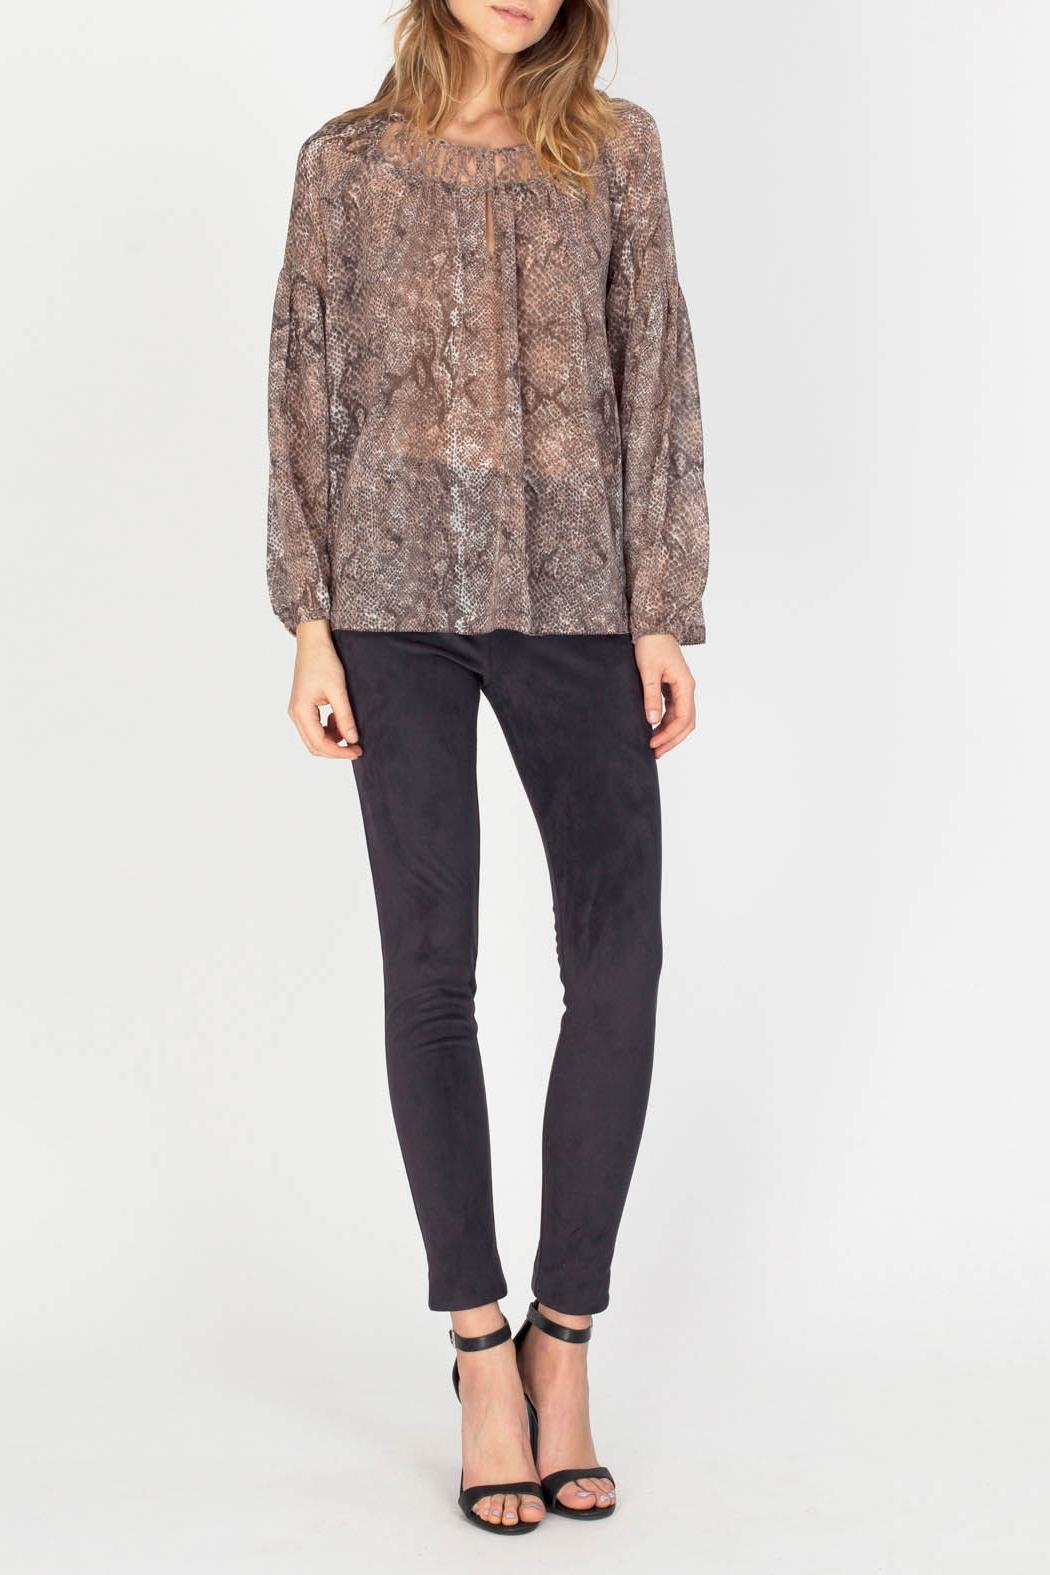 Gentle Fawn Maisie Chiffon Blouse - Front Cropped Image